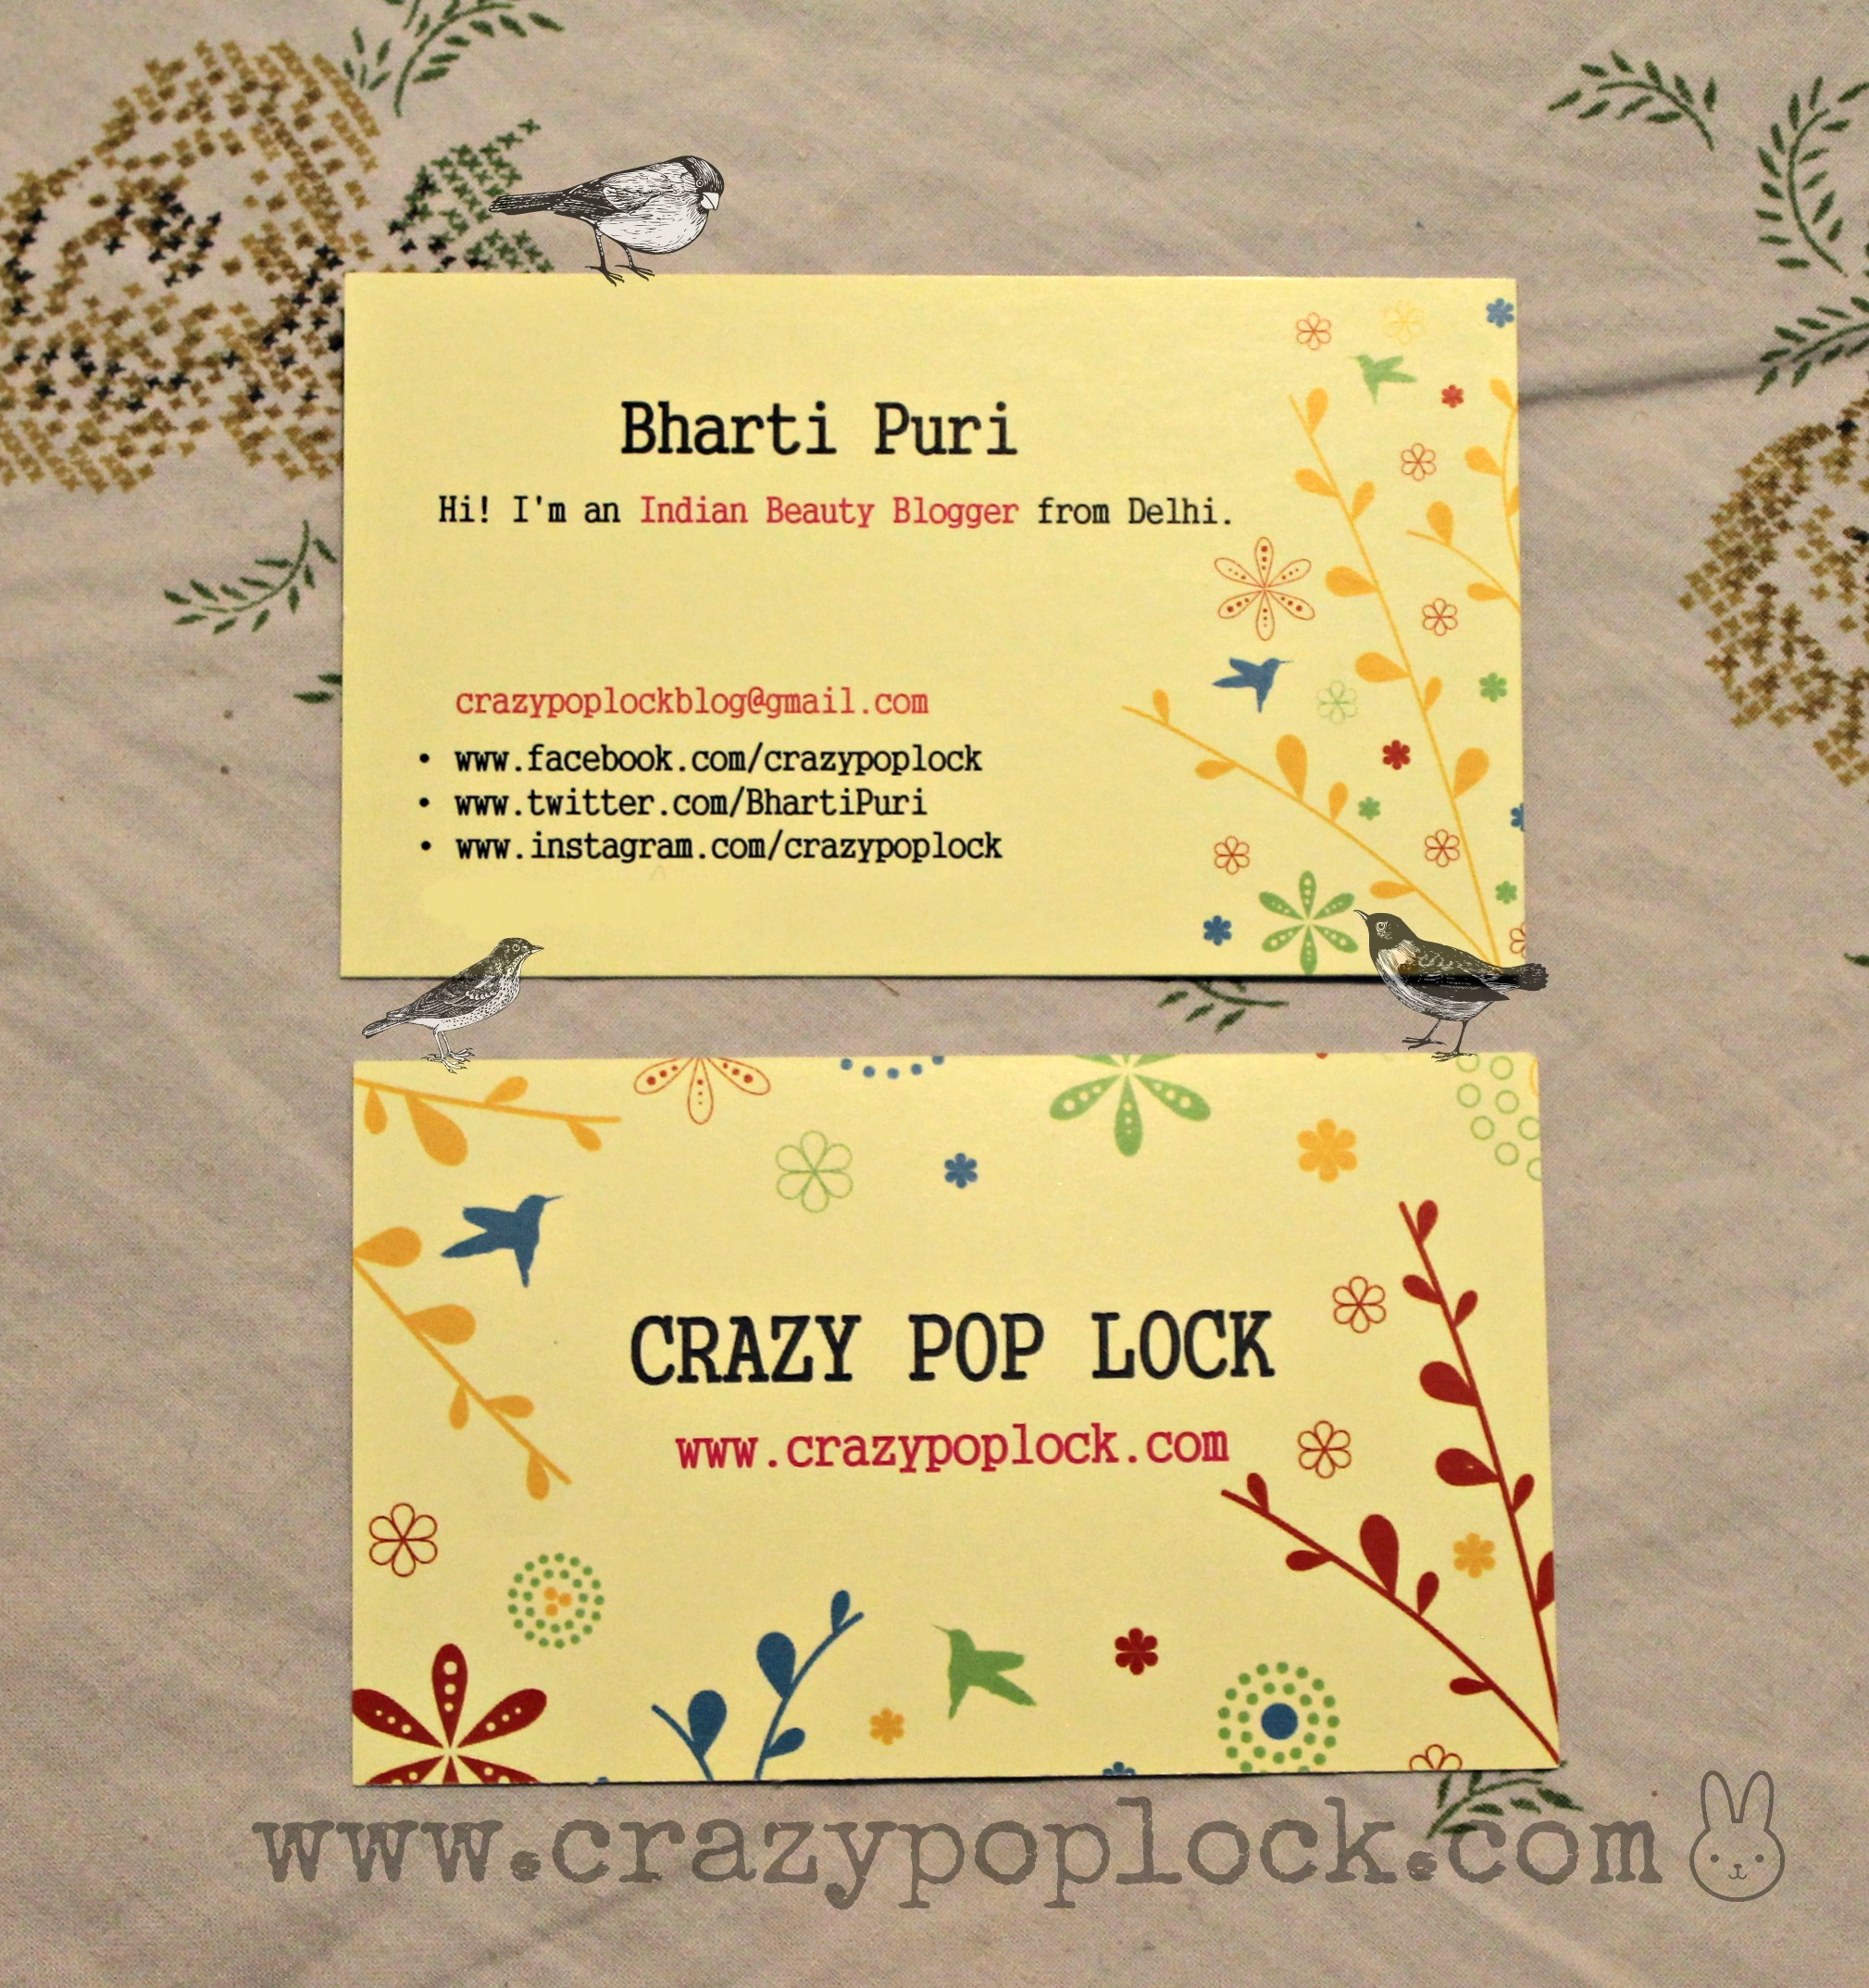 New Business Cards! | B h a r t i P u r i |B h a r t i P u r i |